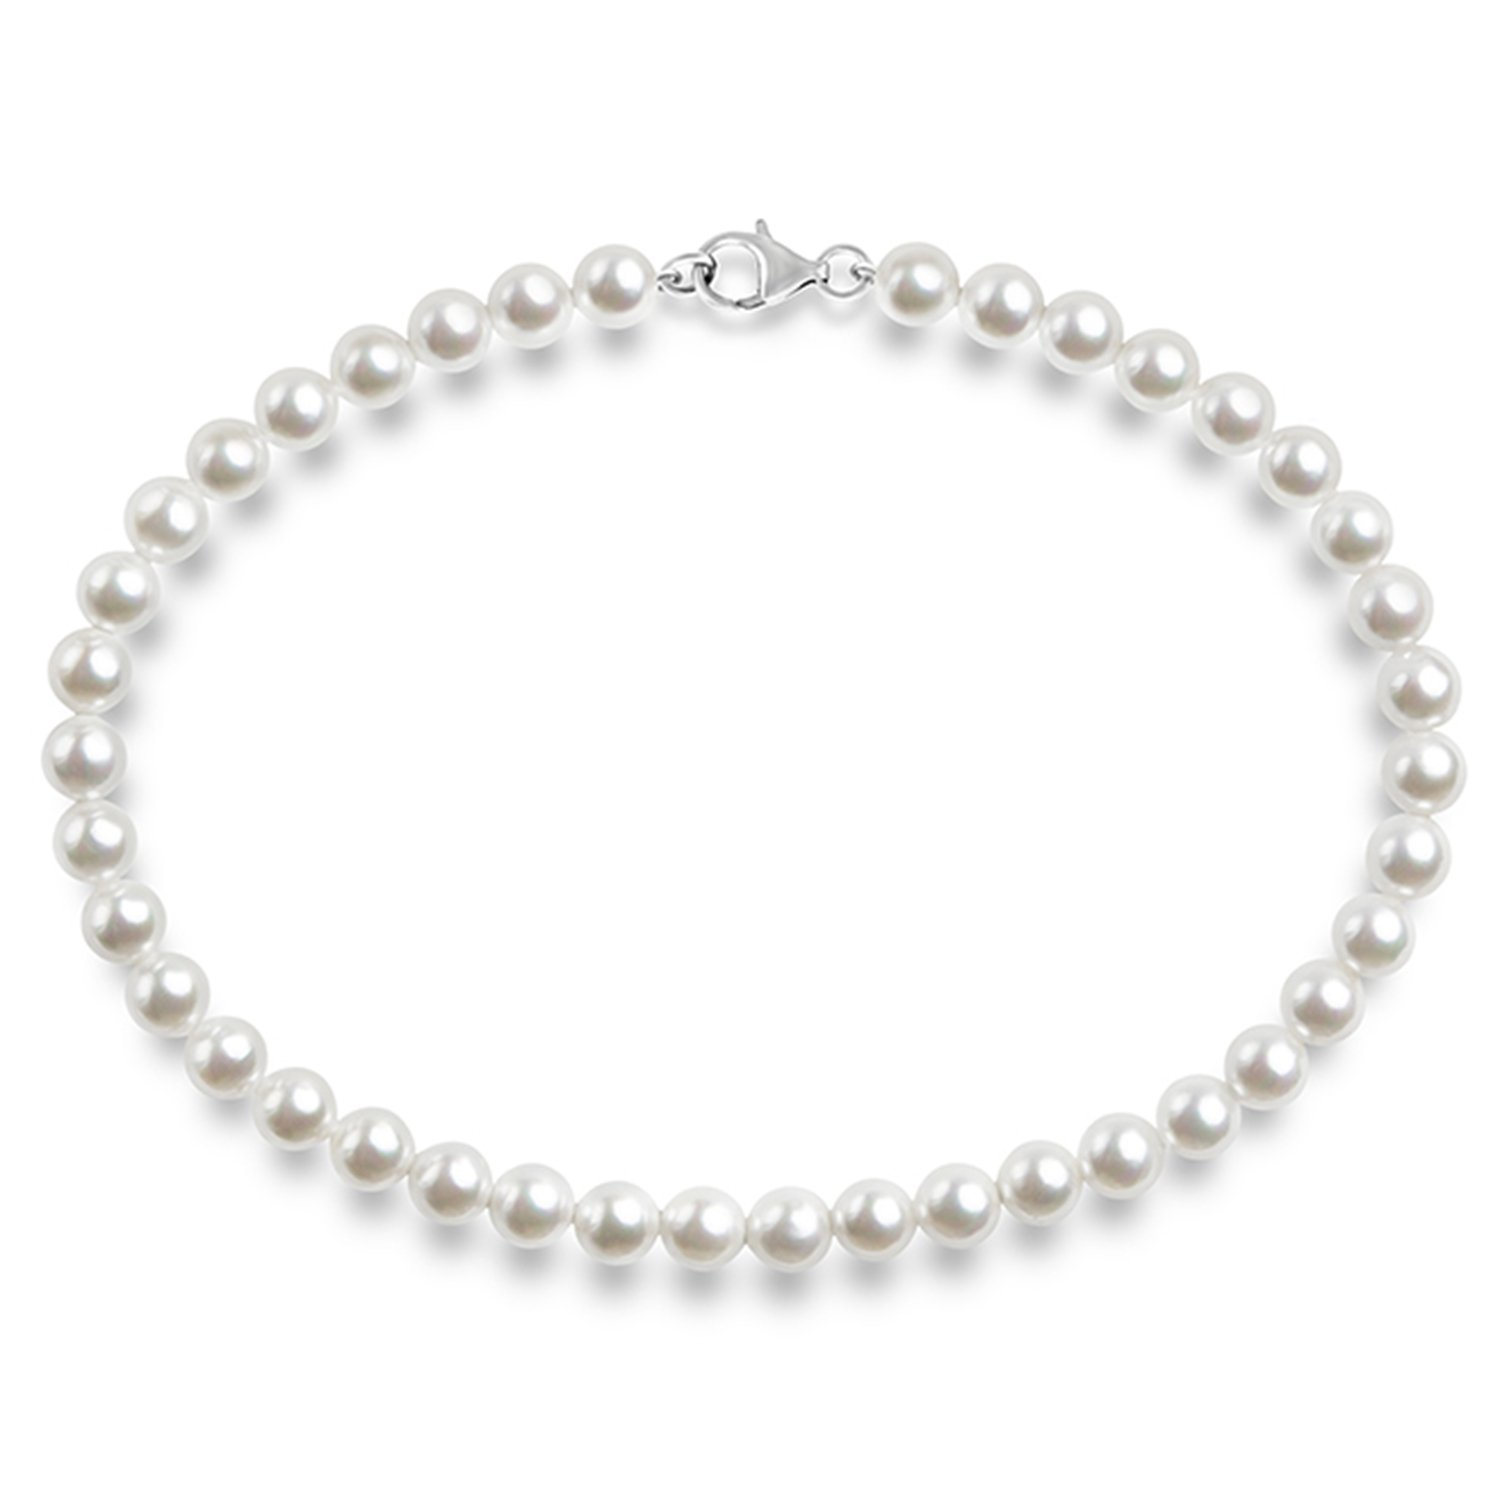 PAVOI White Mother of Pearl Simulated Necklace - 16'' Length (6mm)